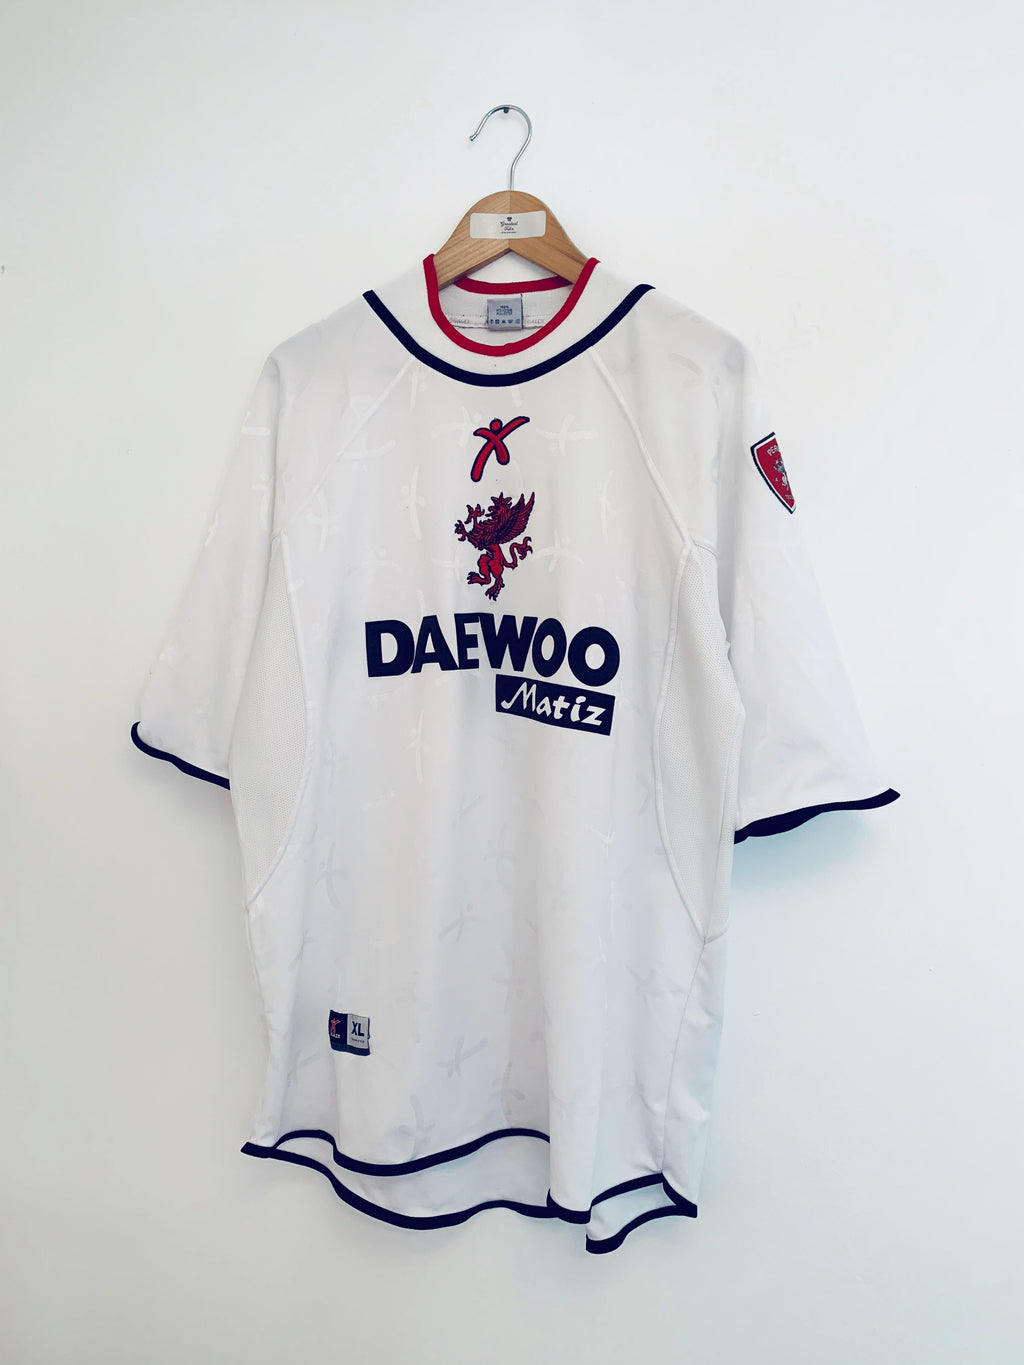 2001/02 Perugia Away Shirt (XL) 8.5/10